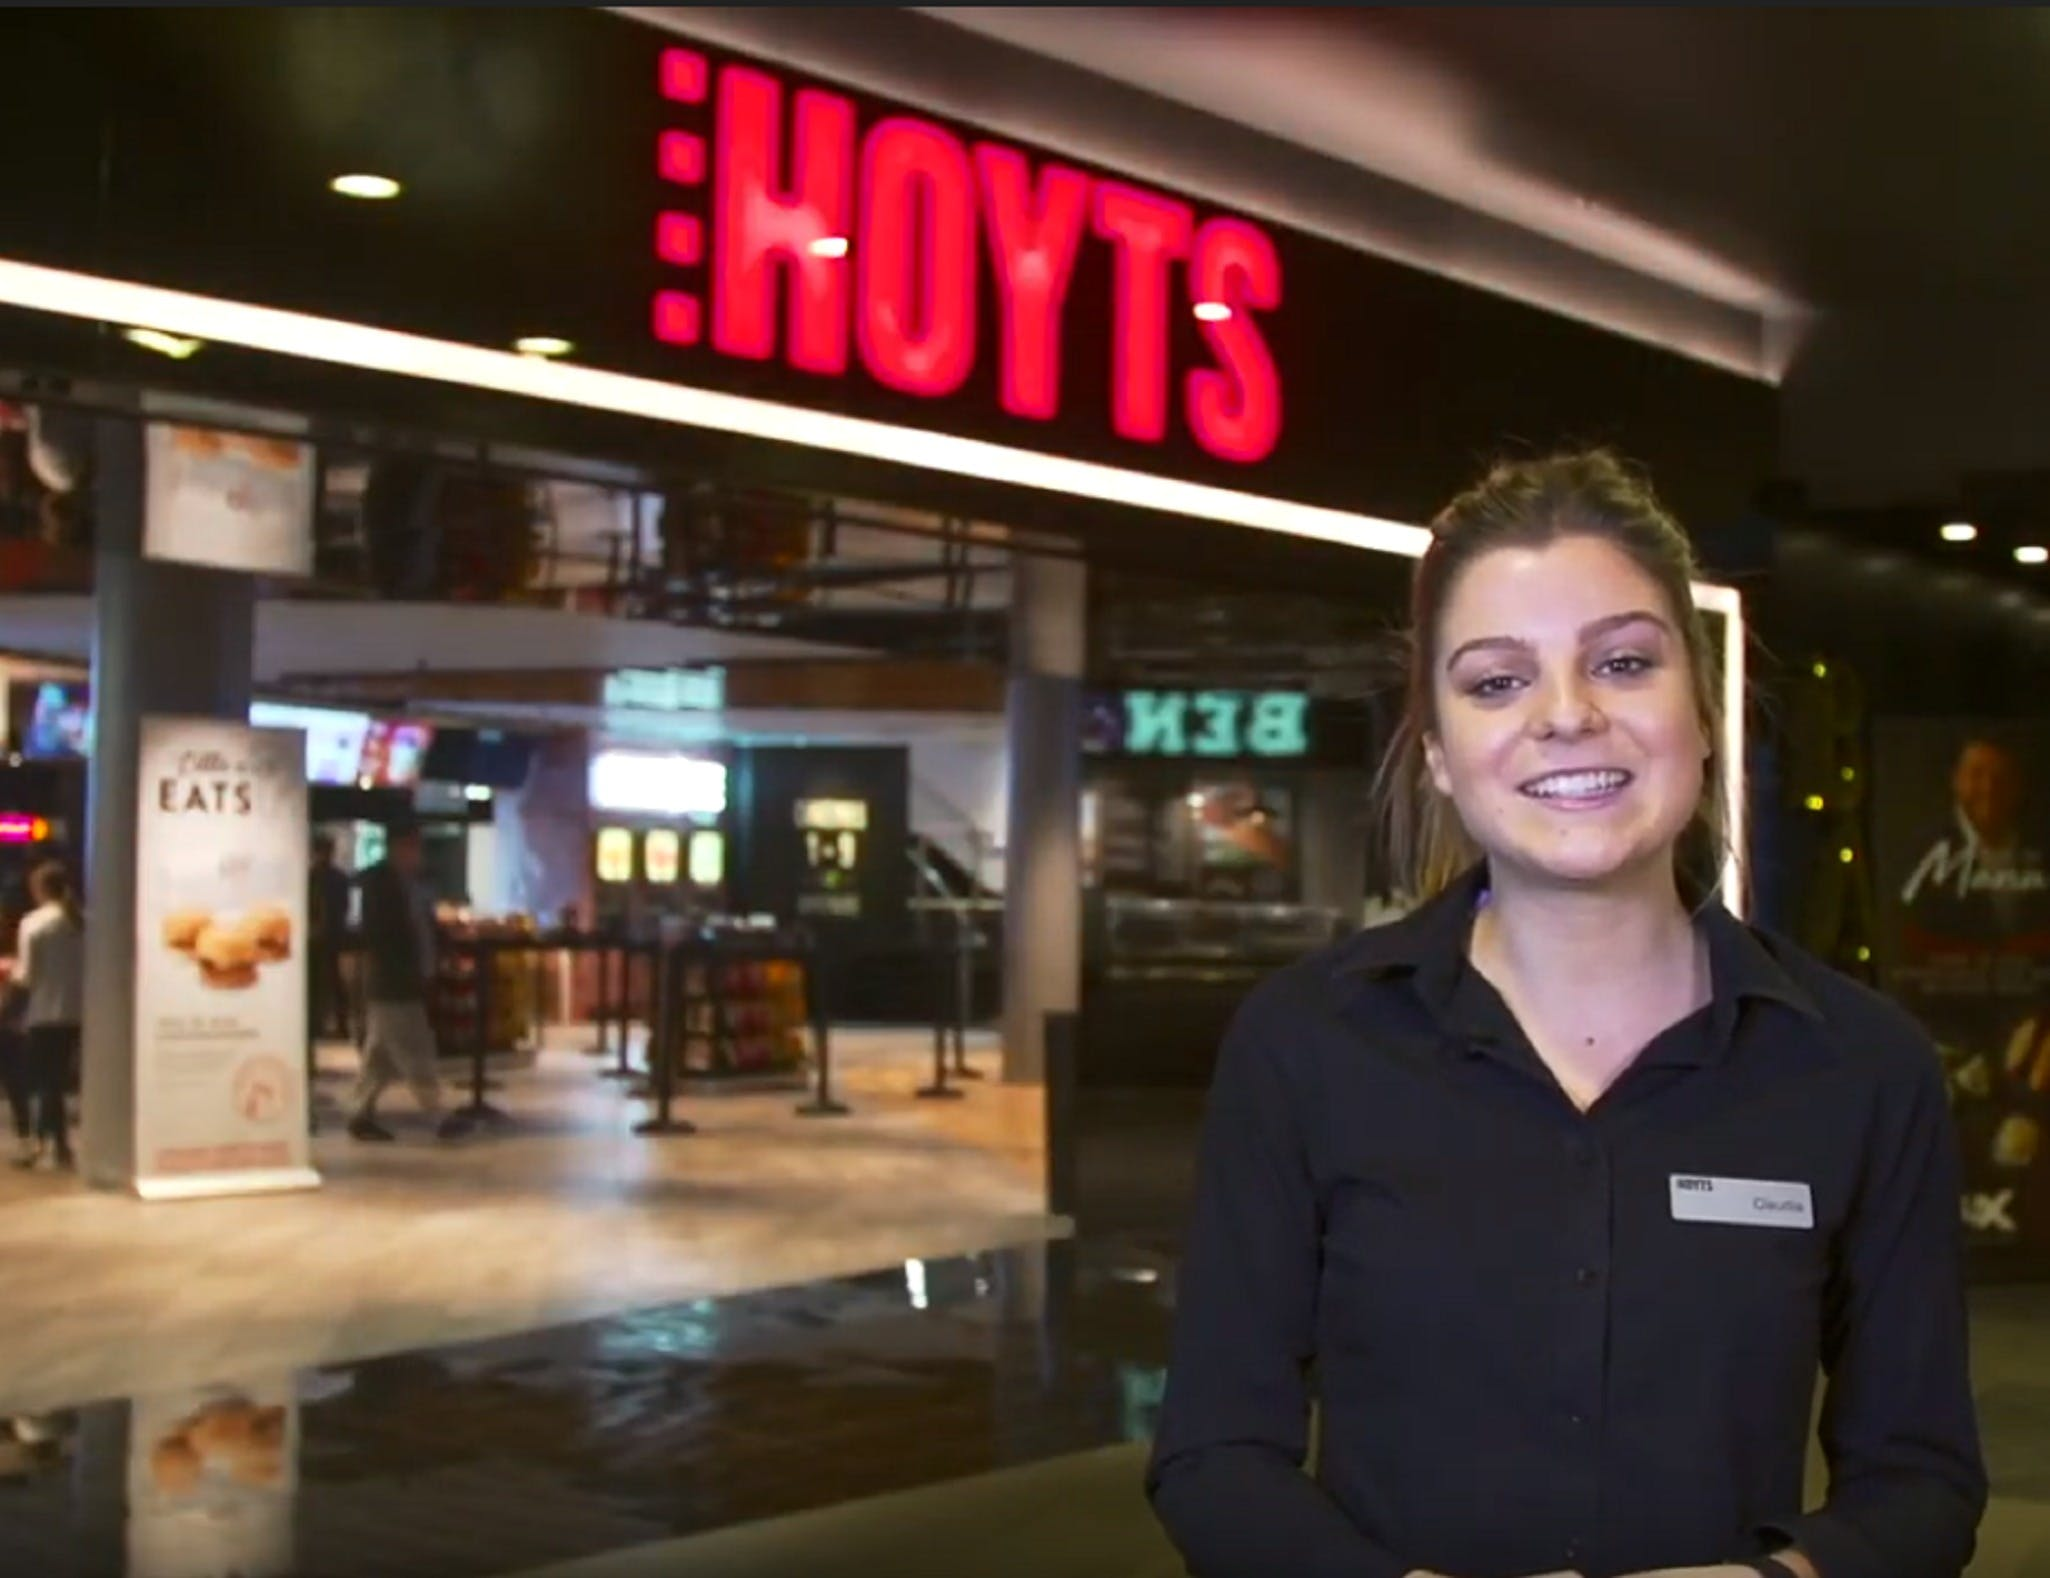 HOYTS - Carousel - Australia Accommodation